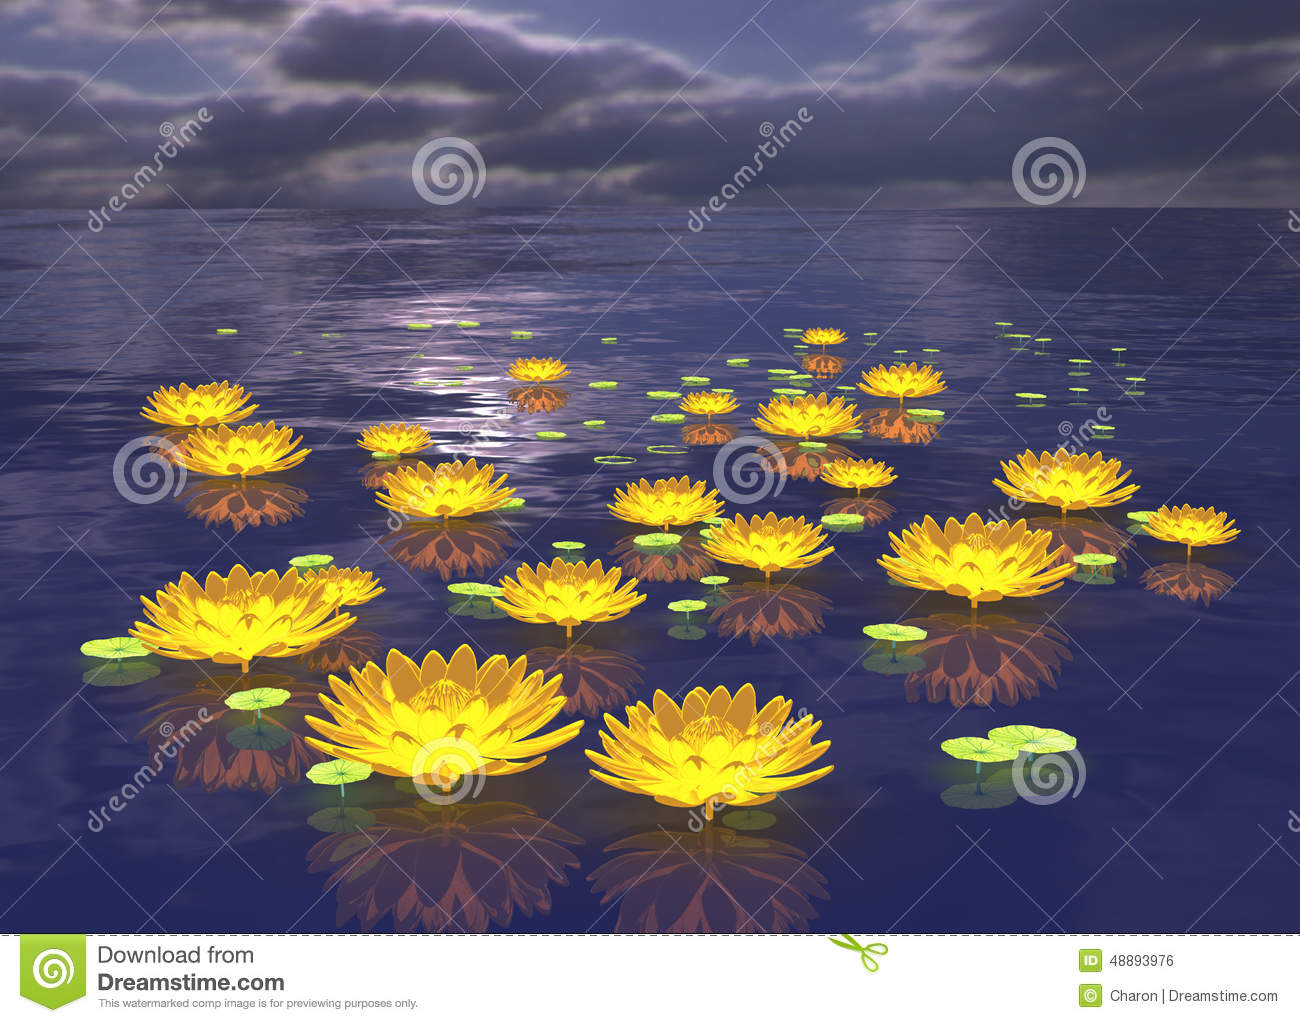 Lotus flower glowing lily water background stock illustration lotus flower glowing lily water background izmirmasajfo